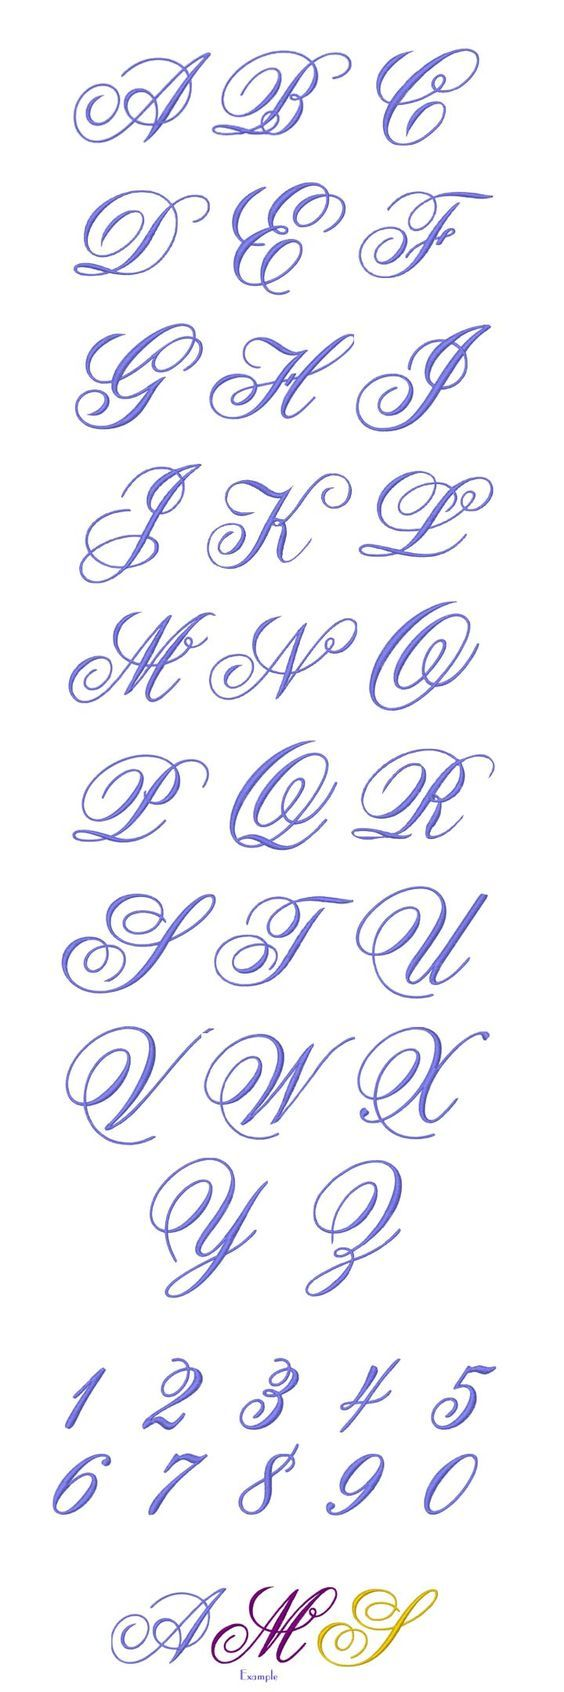 Monogram embroidery designs free design